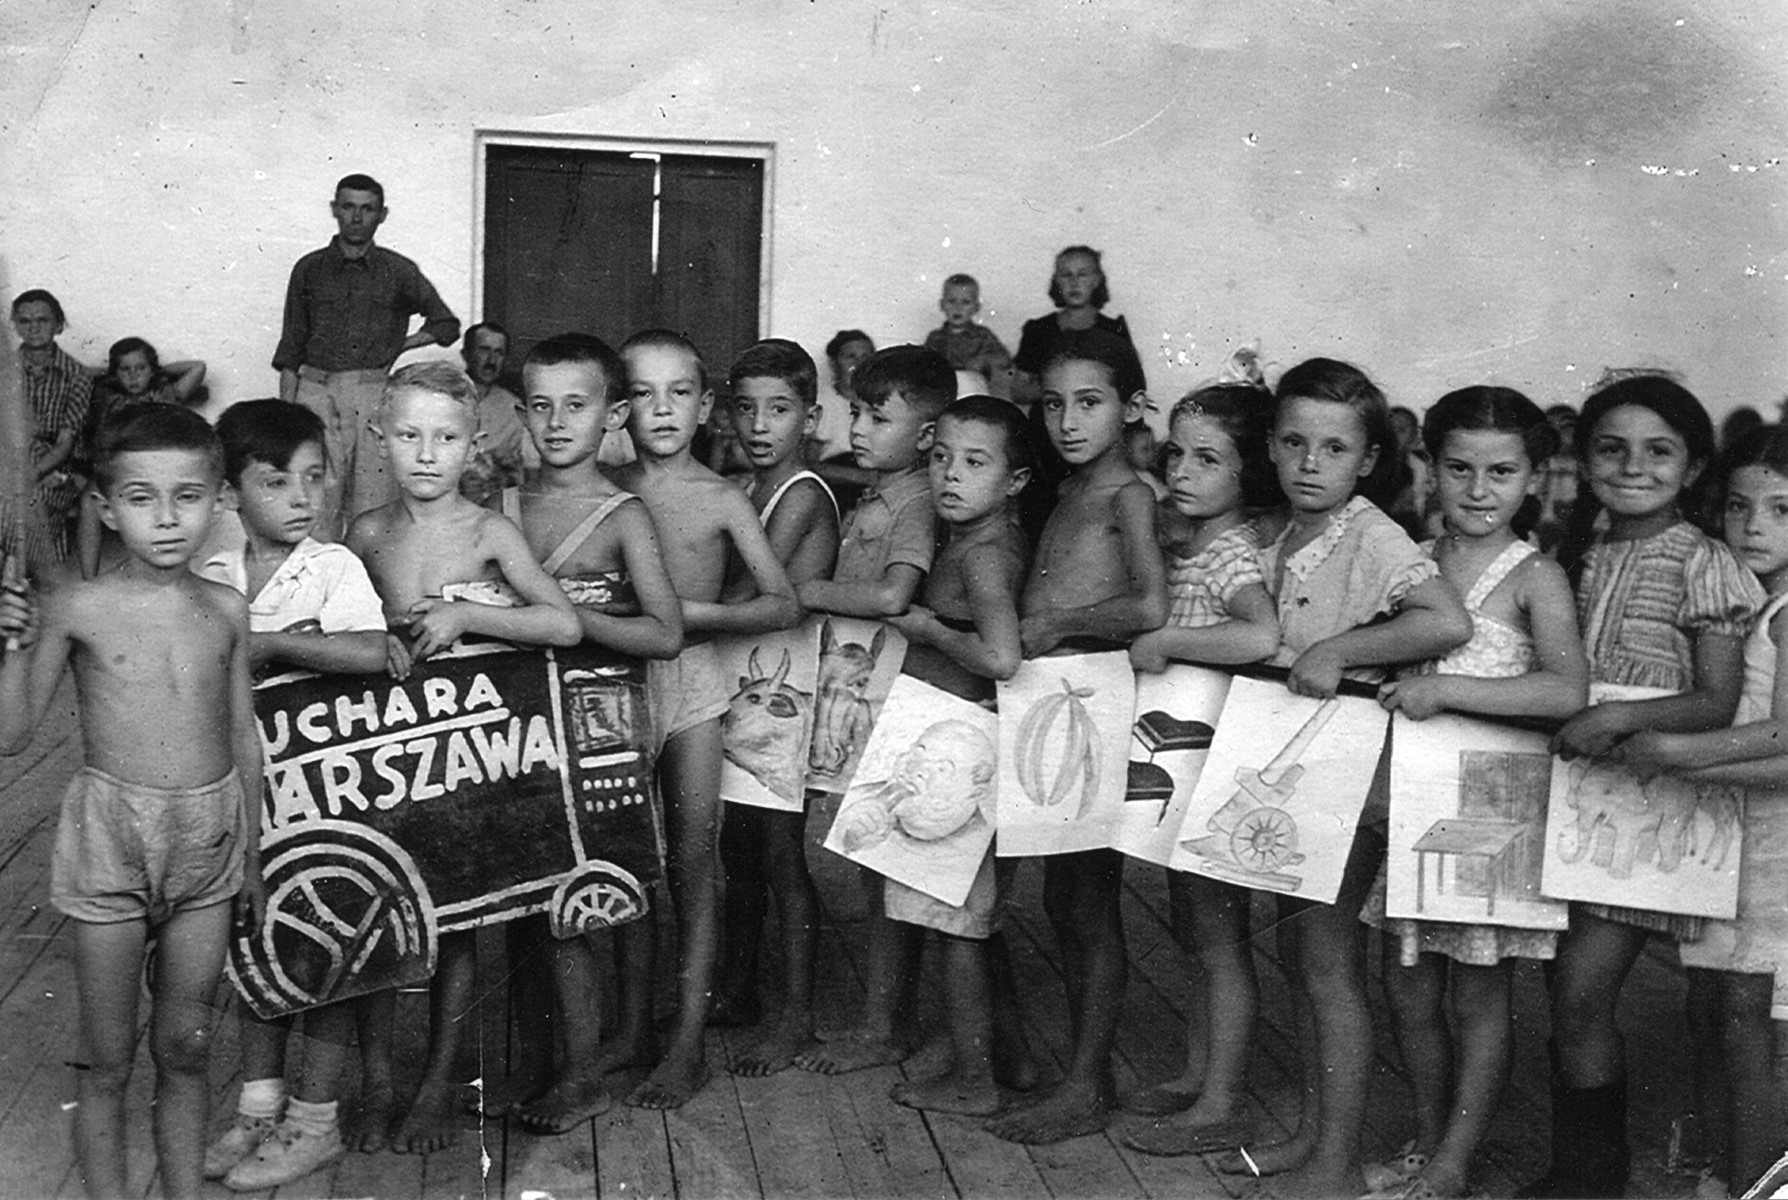 Zvia Korenzyer (fourth from right) and her classmates pose in Bukhara, Uzbekistan 1945